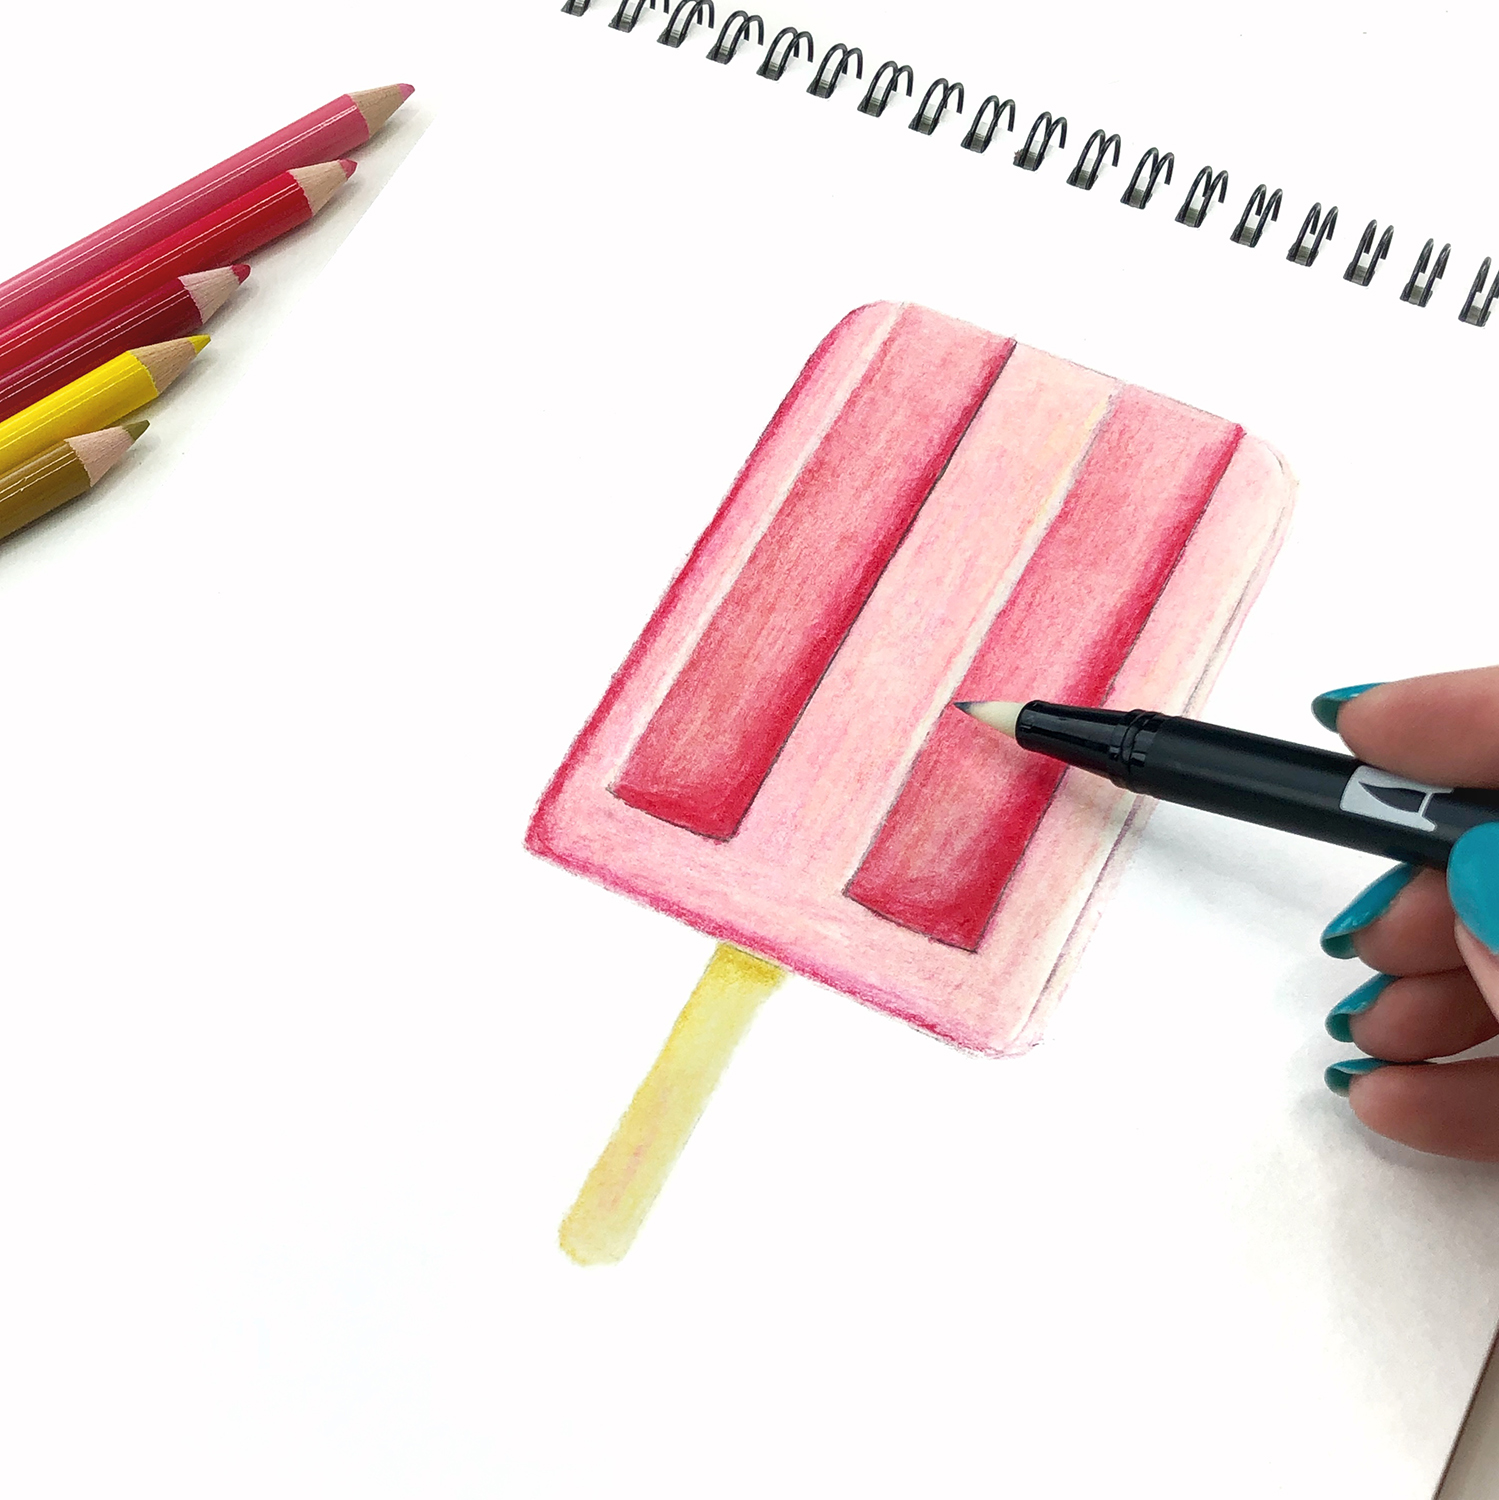 How to Draw a Cute Popsicle Character by Jessica Mack of BrownPaperBunny.